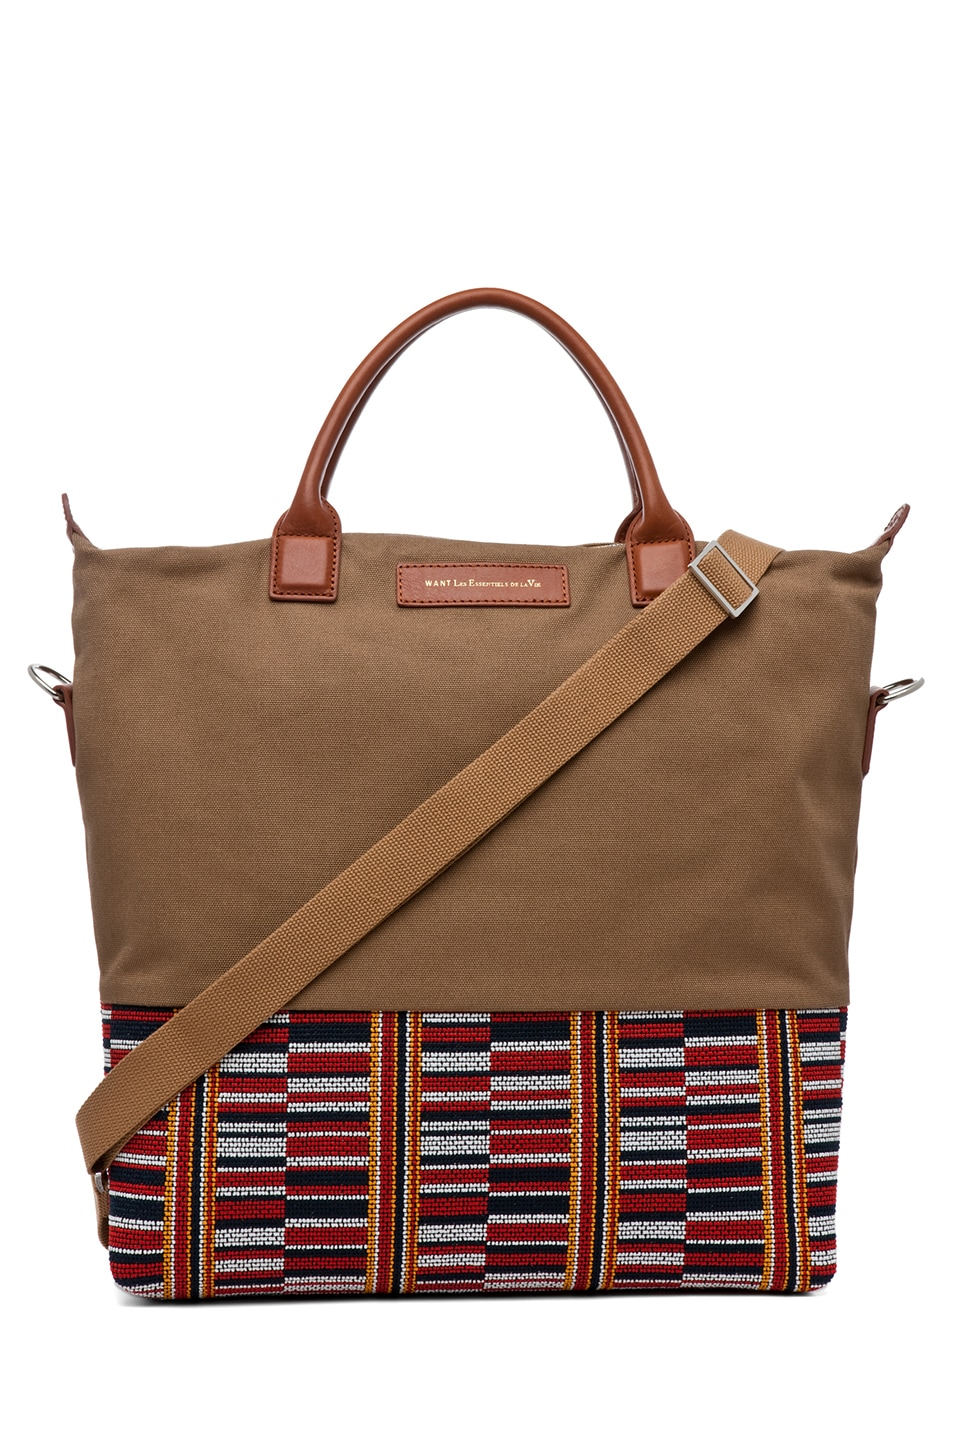 Image 1 of Want Les Essentiels De La Vie O'Hare Shopper Tote in Beige Frise